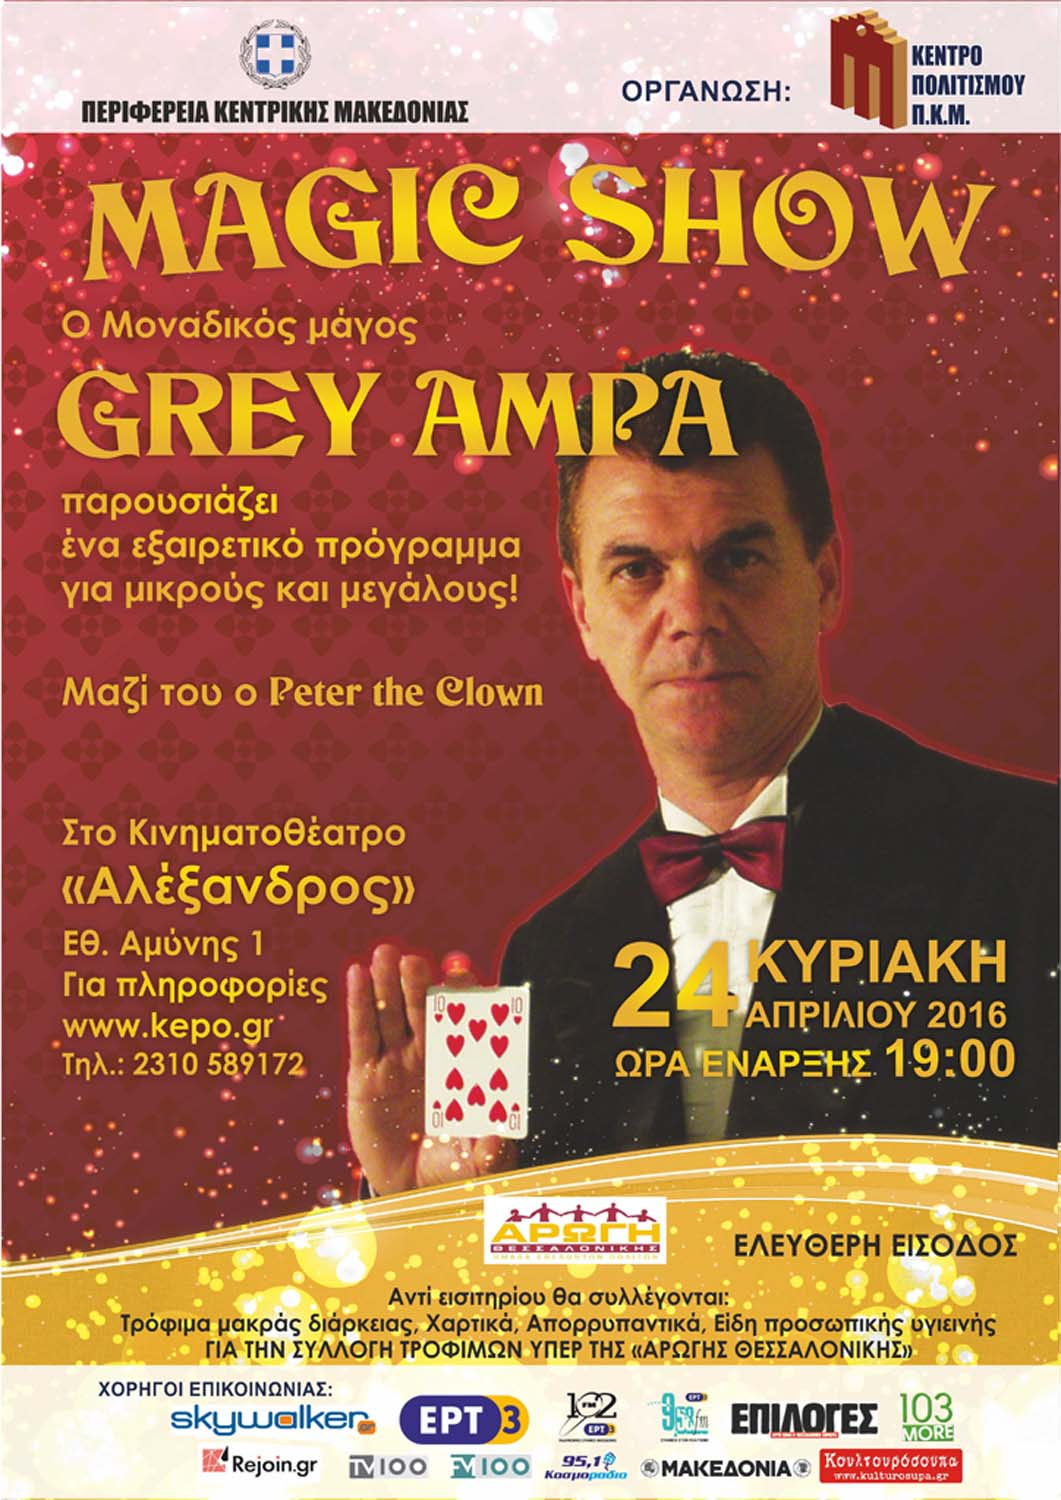 MAGIC SHOW2 TELIKH 1